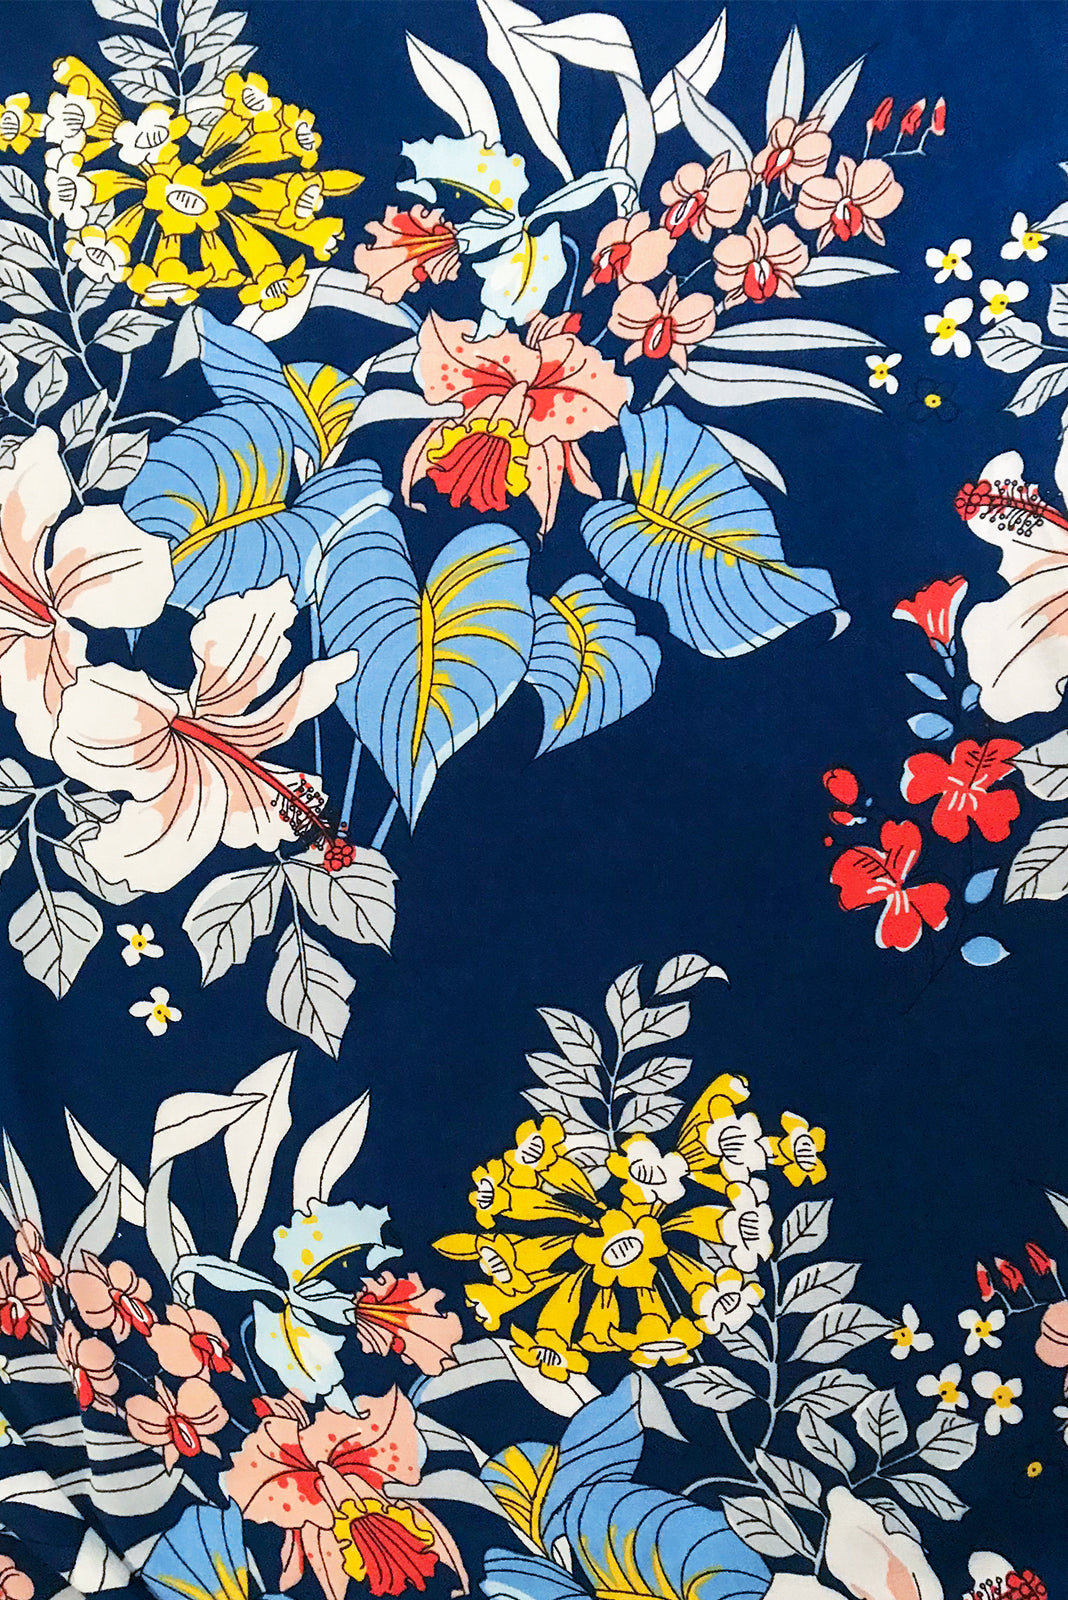 Fabric swatch of Petal Naviti Blue Maxi Wrap Dress features blue base with white, yellow, coral, peach and baby blue floral print in woven 100% rayon.